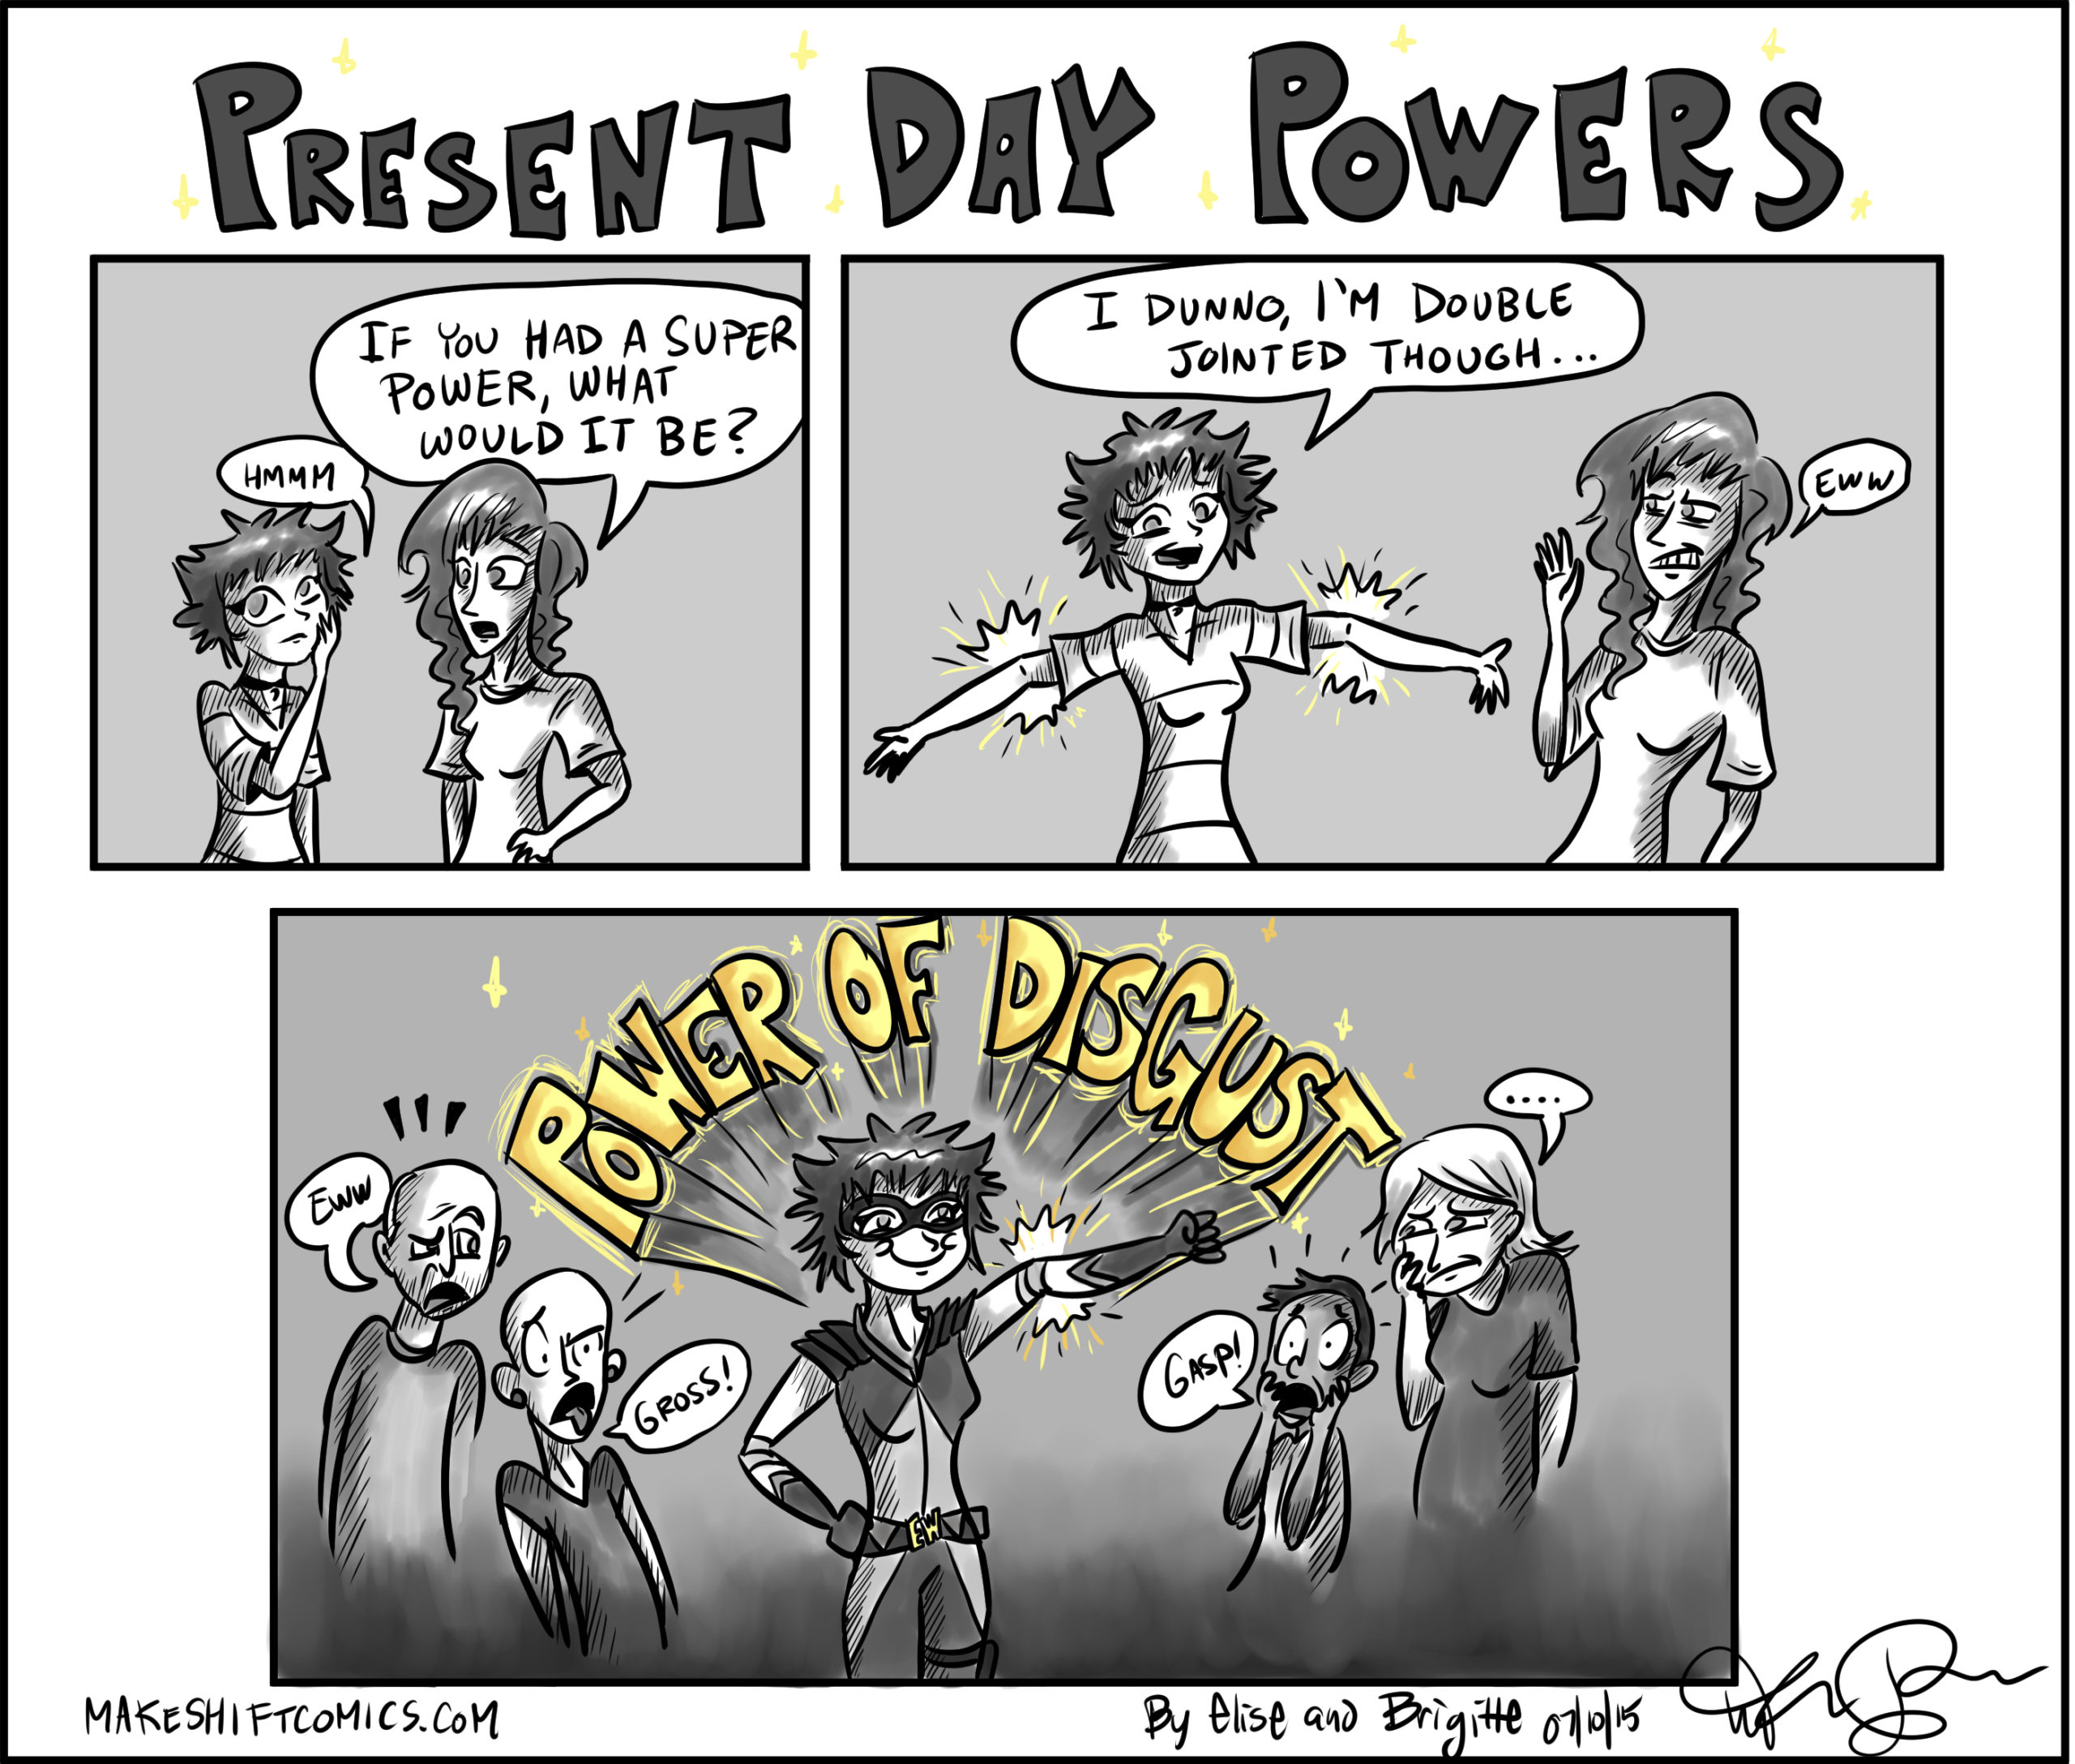 Present Day Powers